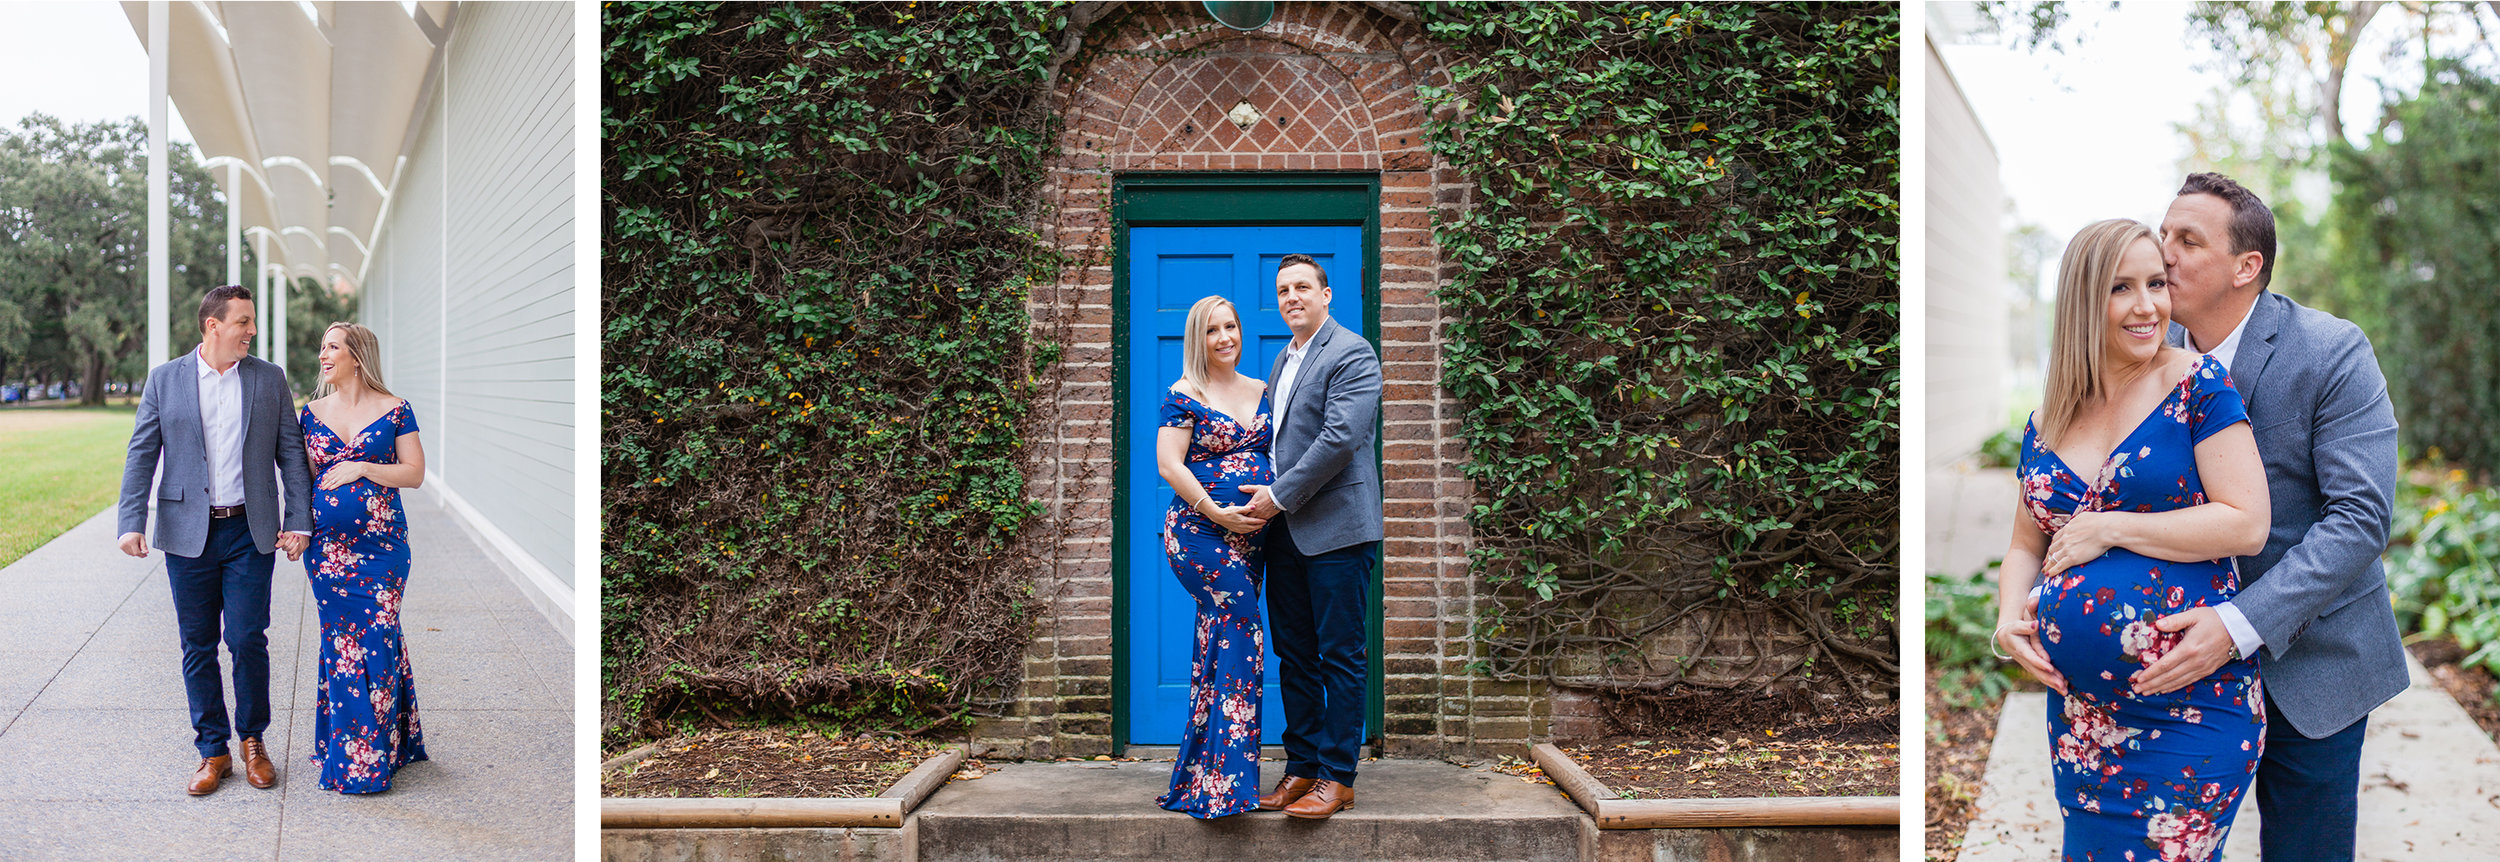 houston family photographer engagement maternity